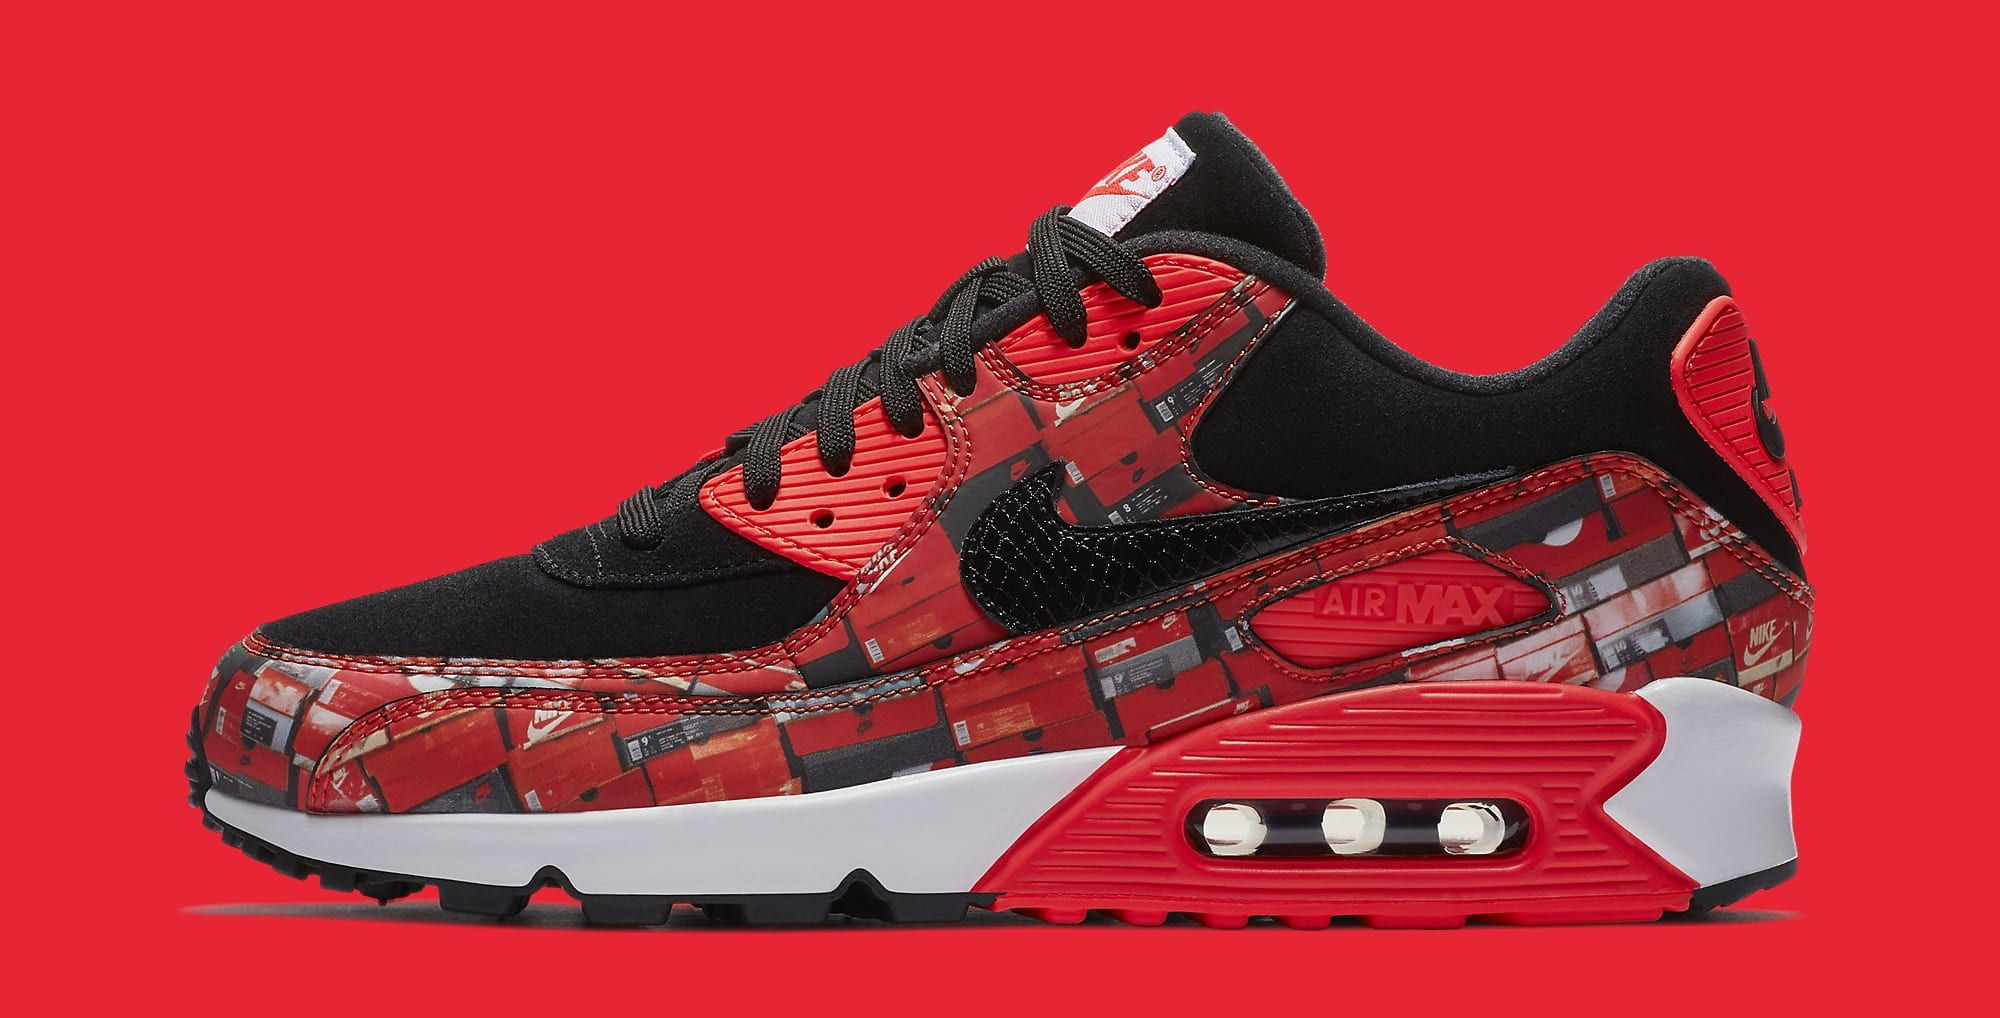 Atmos x Nike Air Max 90 'Infrared/We Love Nike' AQ0926-001 (Lateral)